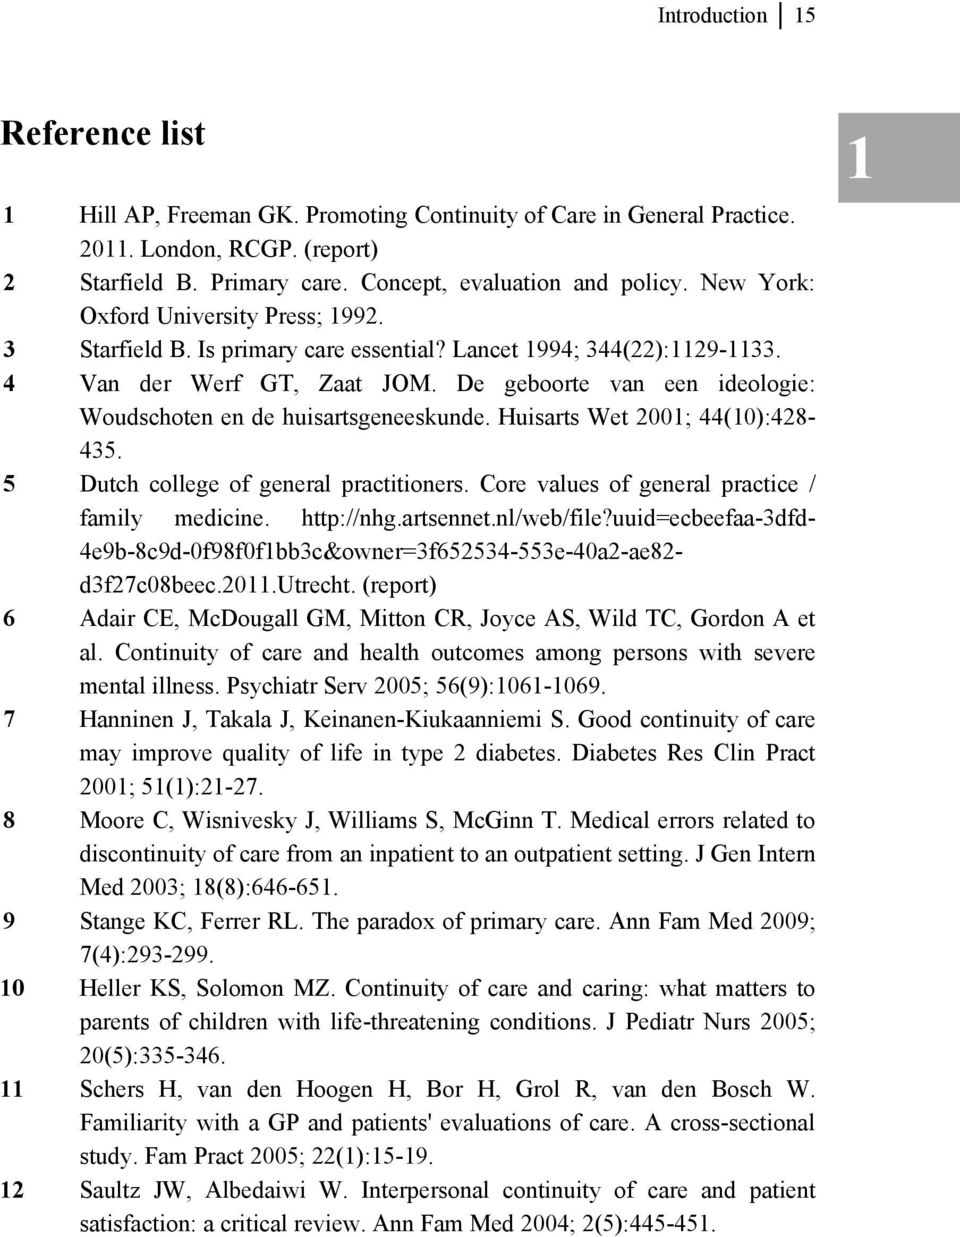 De geboorte van een ideologie: Woudschoten en de huisartsgeneeskunde. Huisarts Wet 2001; 44(10):428-435. 5 Dutch college of general practitioners. Core values of general practice / family medicine.